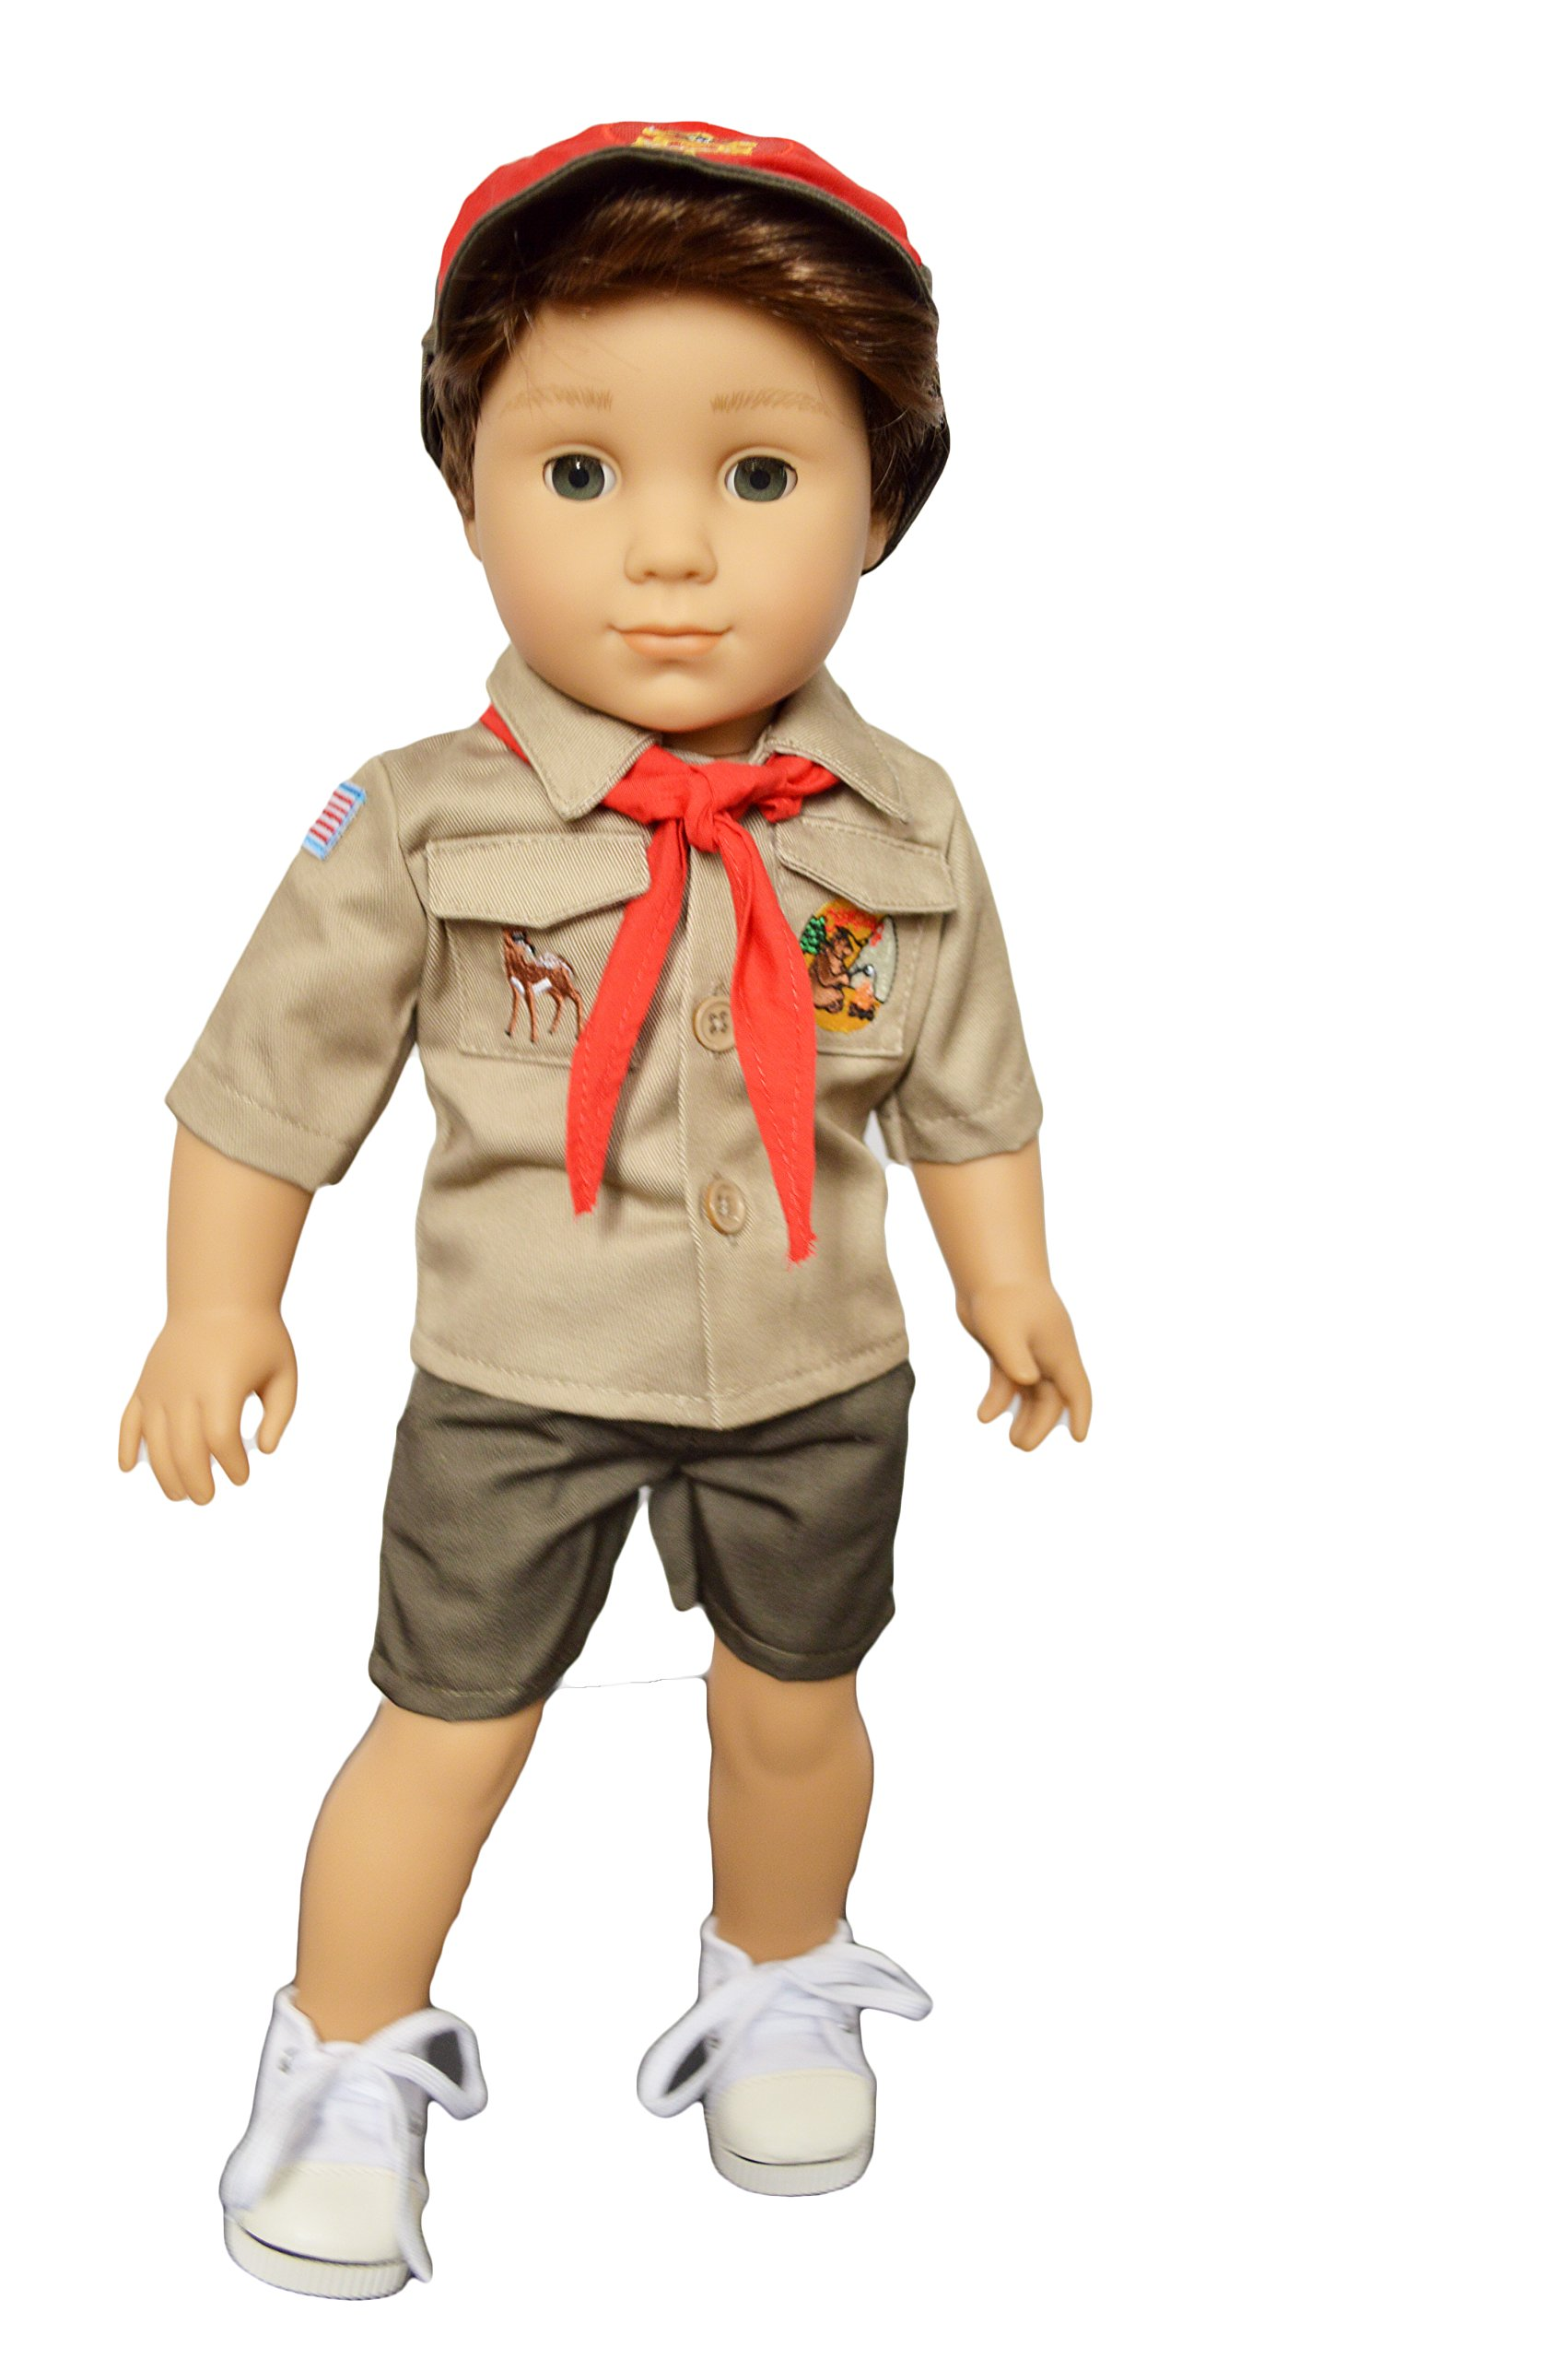 Brittany's My Scouts Uniform with Embroidered Patches Compatible with American Girl Boy Dolls- 18 Inch Boy Doll Clothes by Brittany's